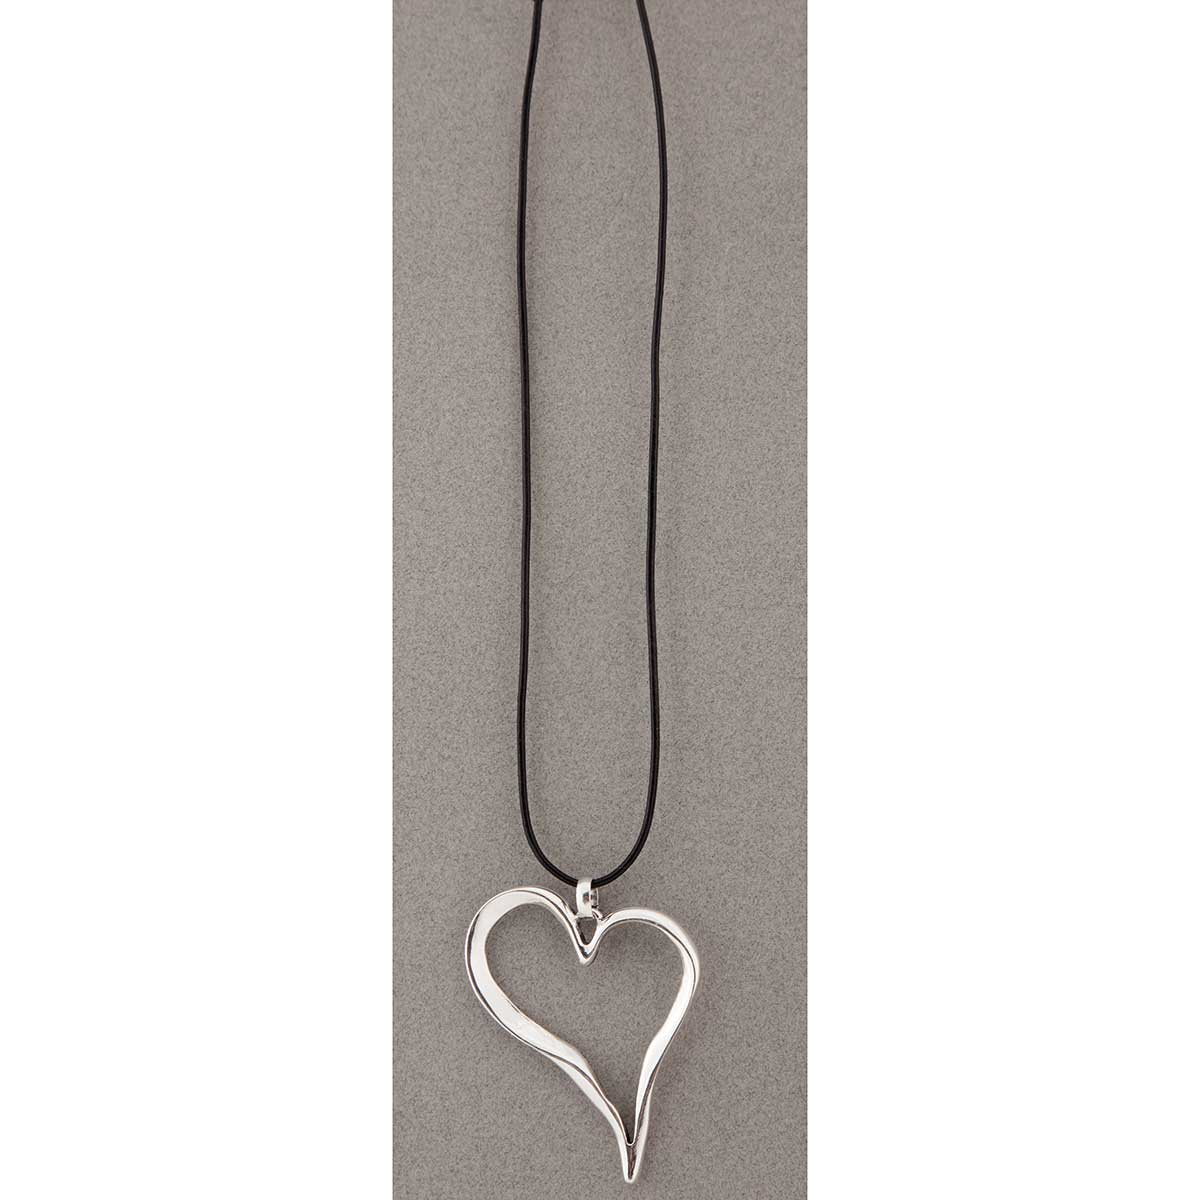 Silver Heart on Black Cord Necklace